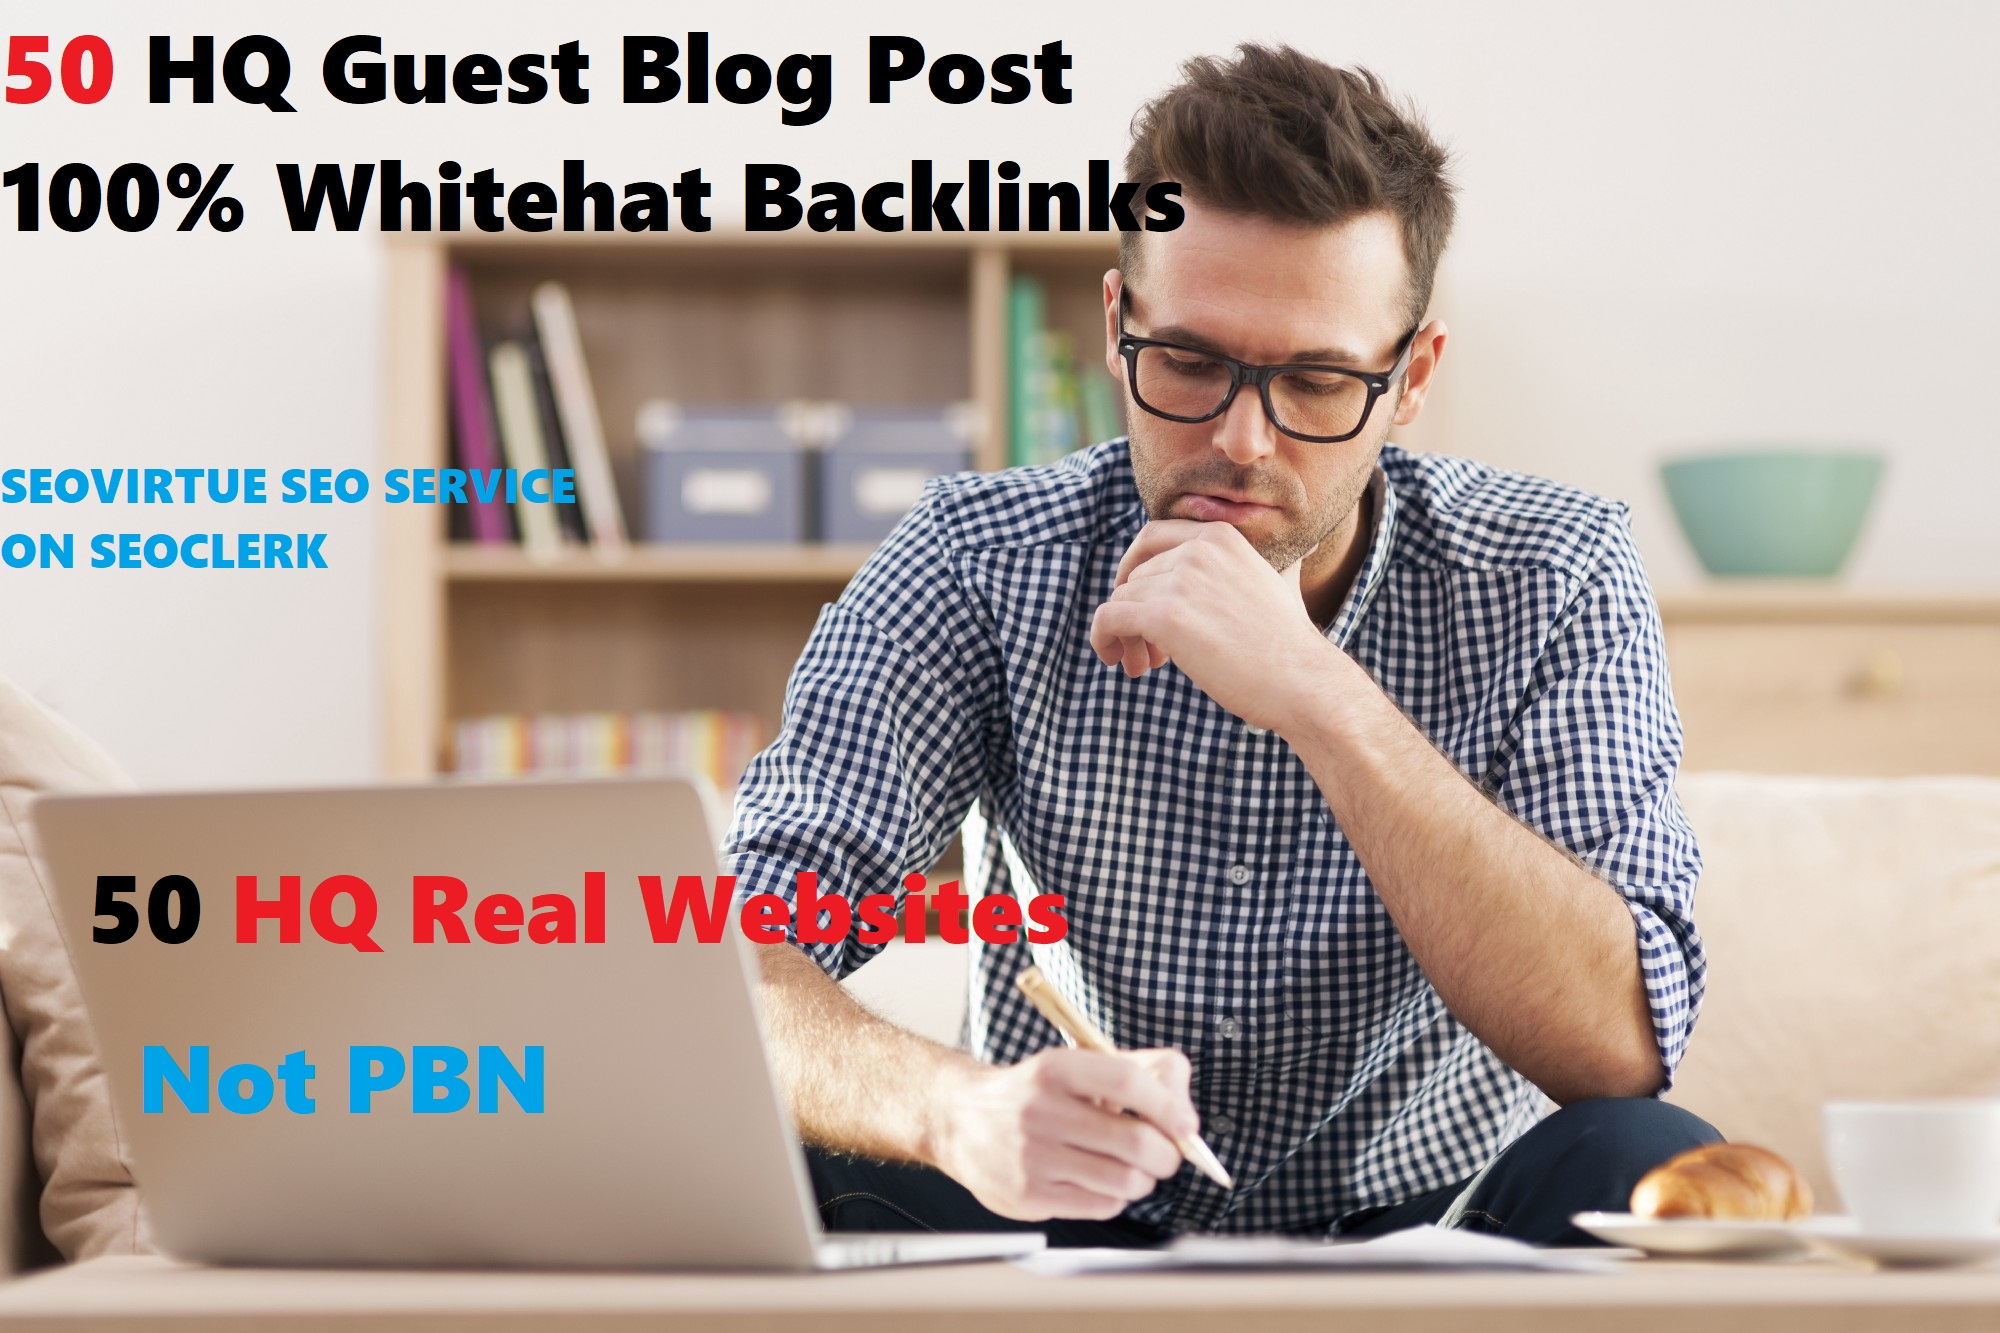 HQ Guest Post On 50 High DA/PA/PR Quality Real Websites Not PBN